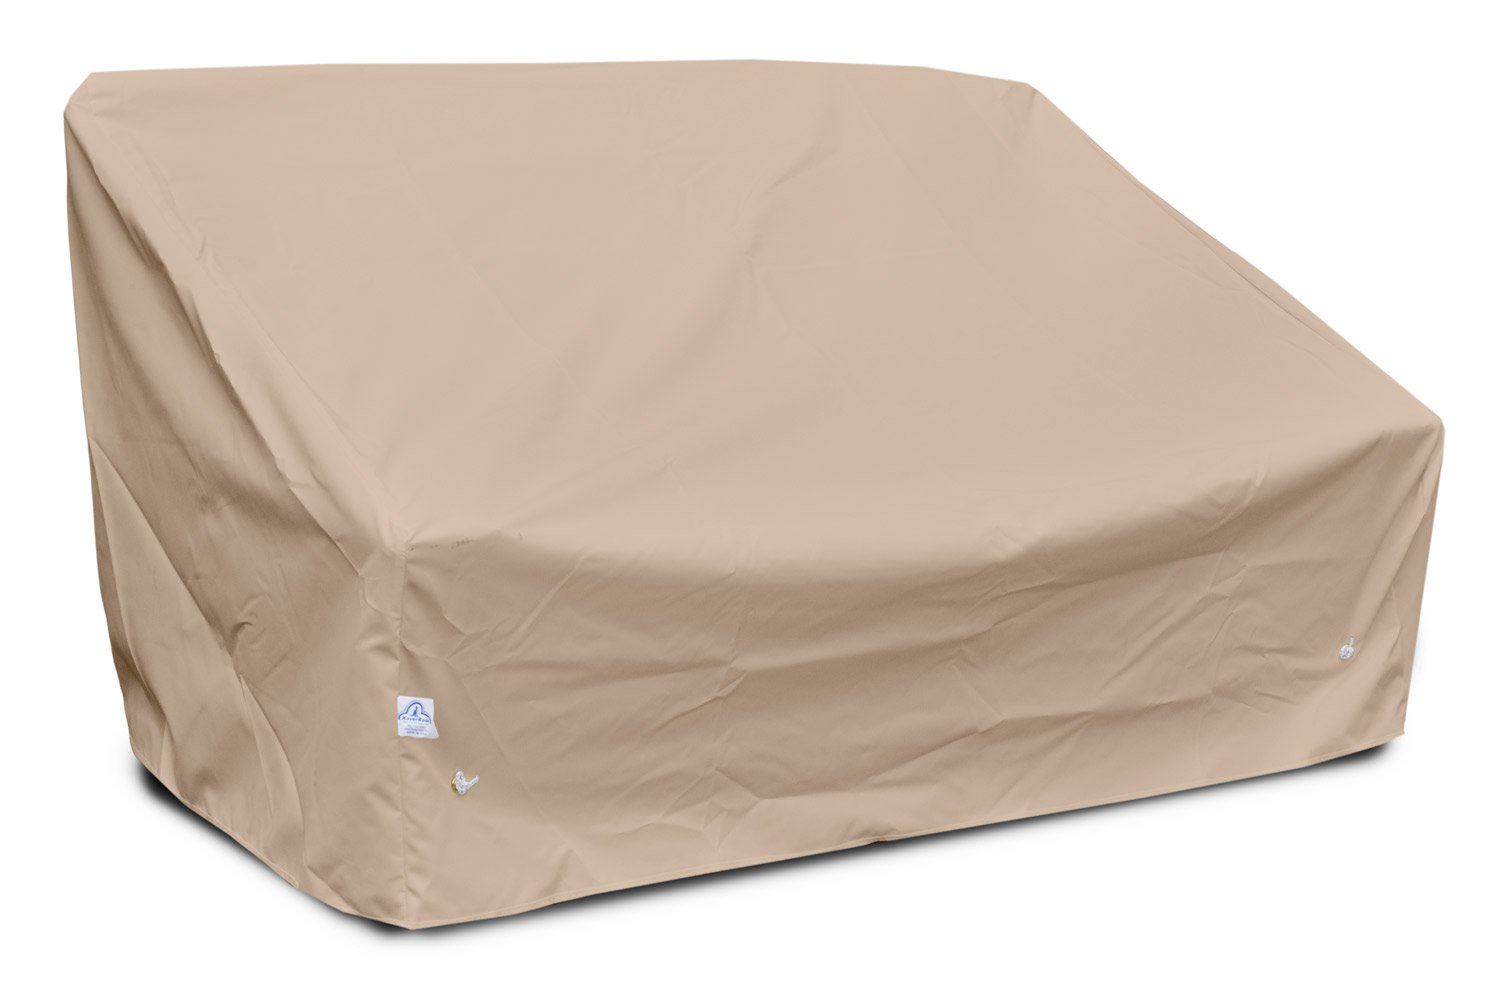 KoverRoos Weathermax 49950 Deep 2-Seat Sofa Cover, 61-Inch Width by 36-Inch Diameter by 32-Inch Height, Large Toast